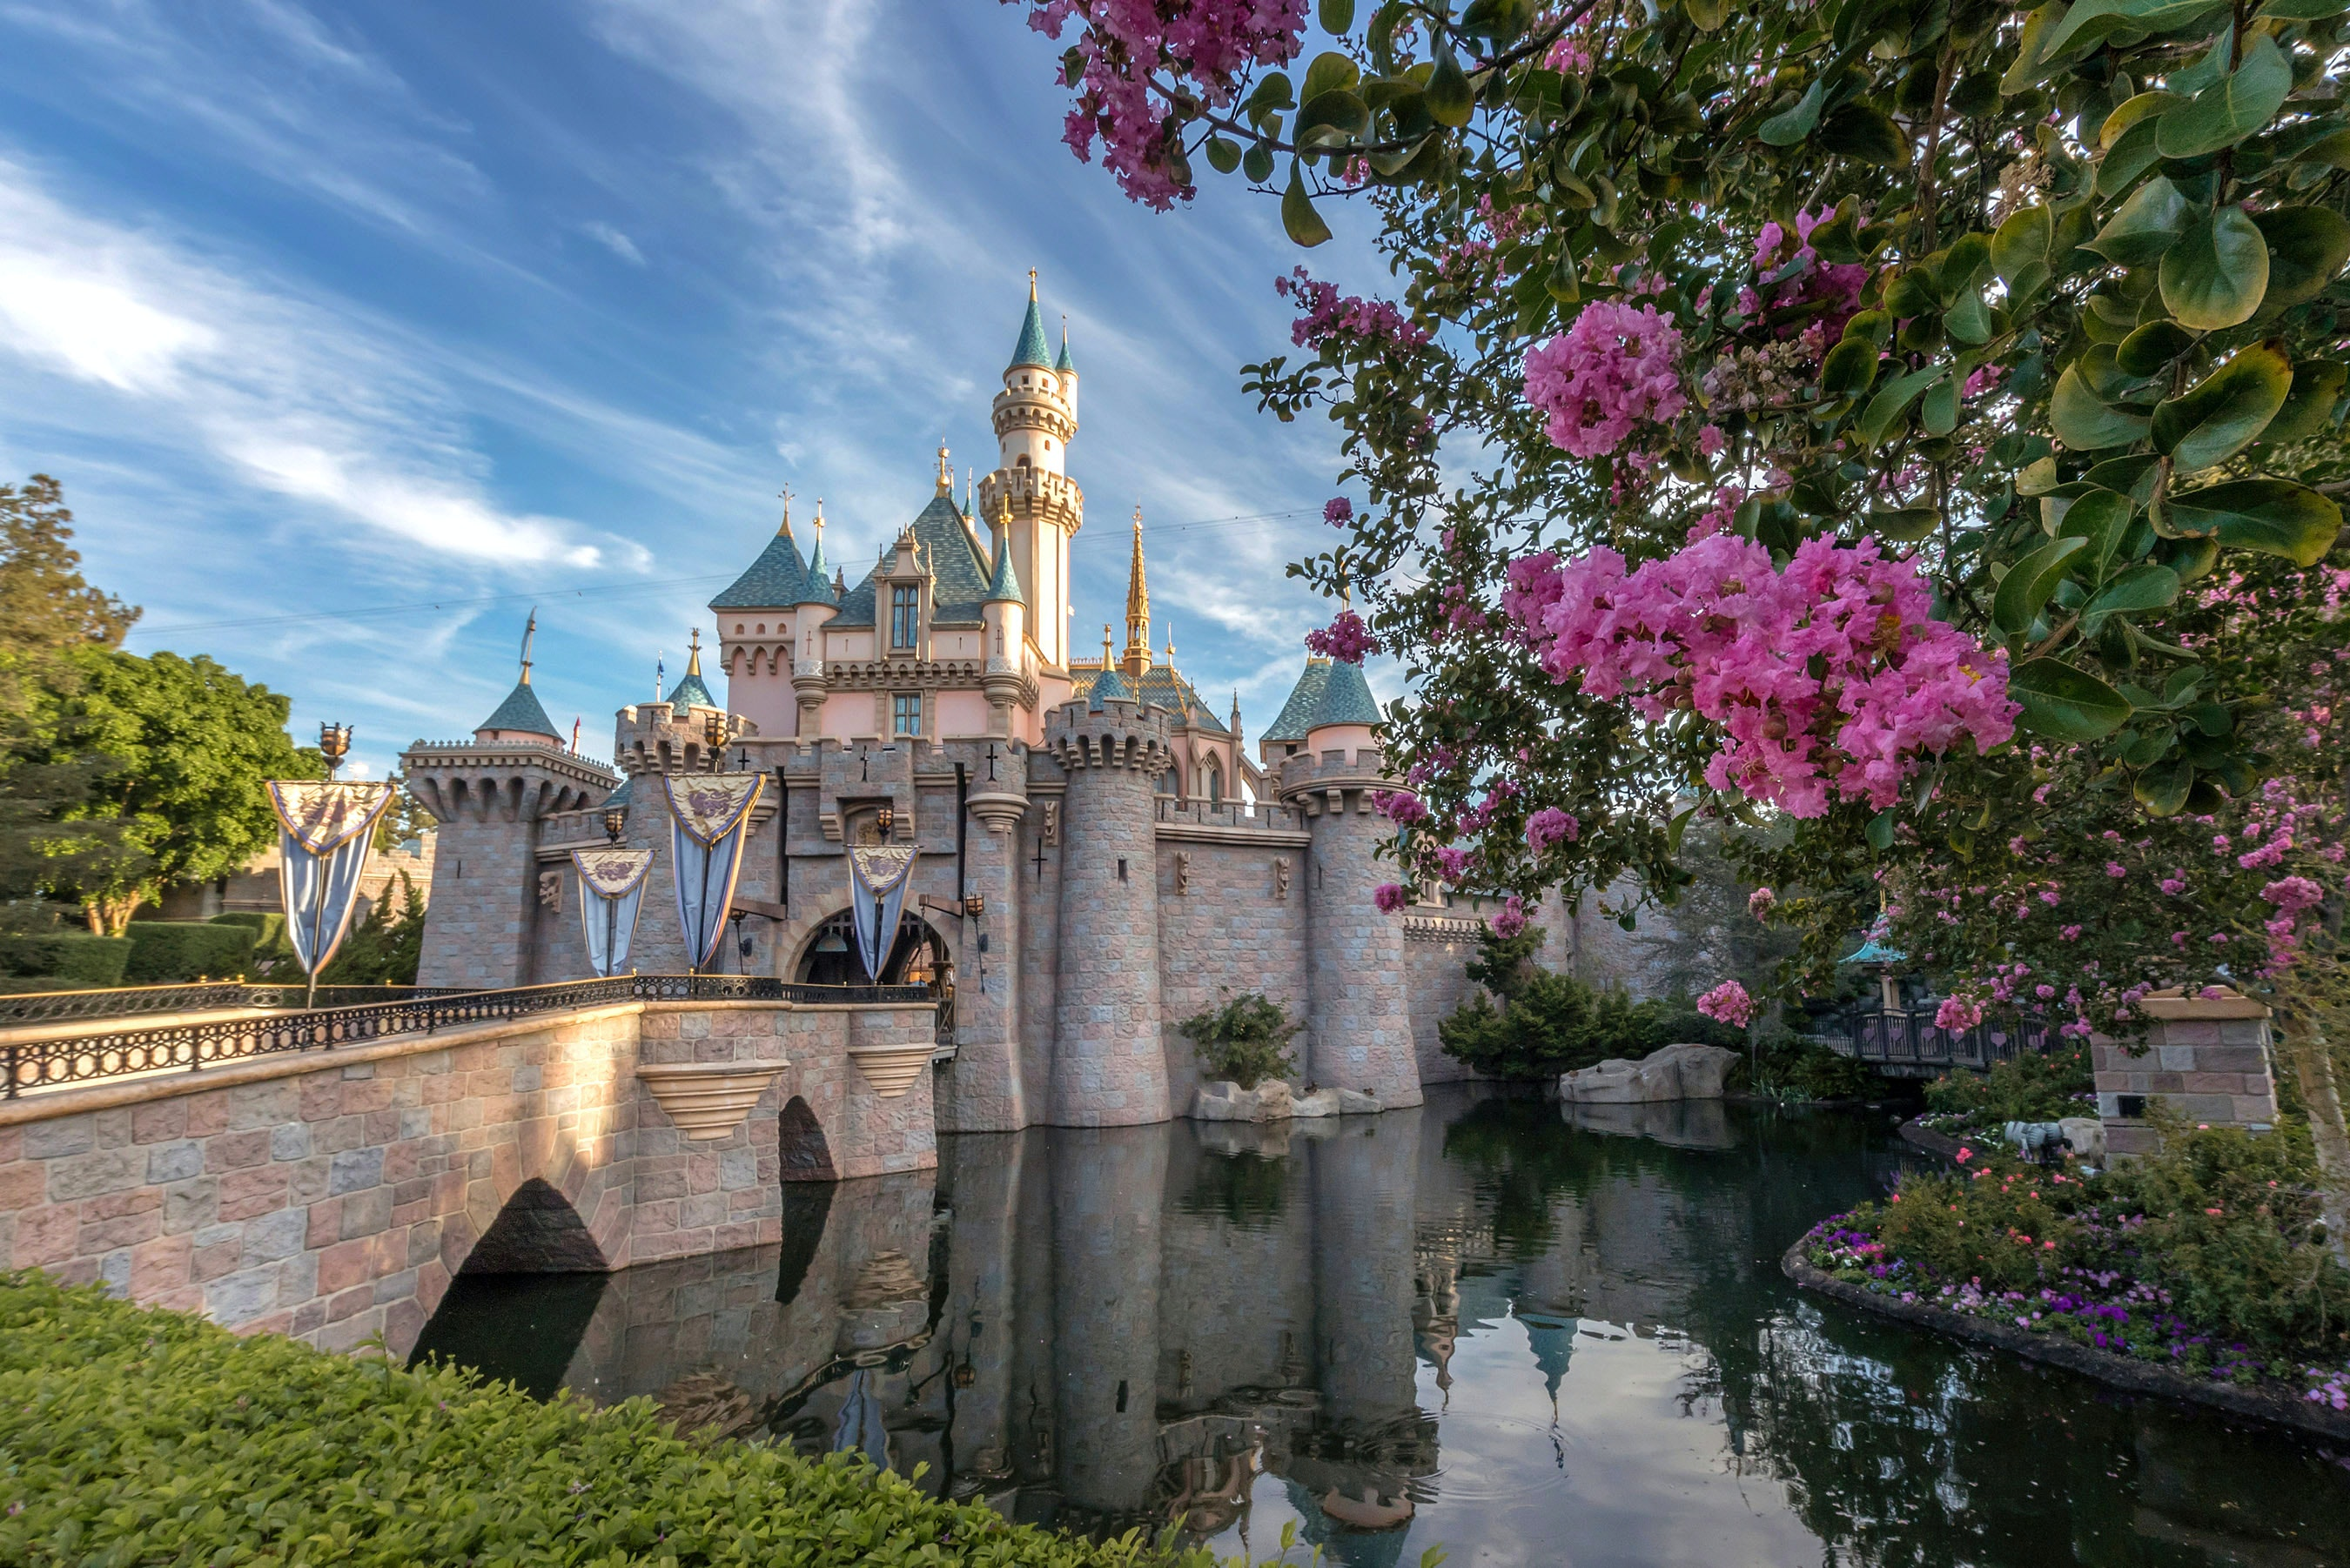 The Grown-Ups' Guide to Disneyland